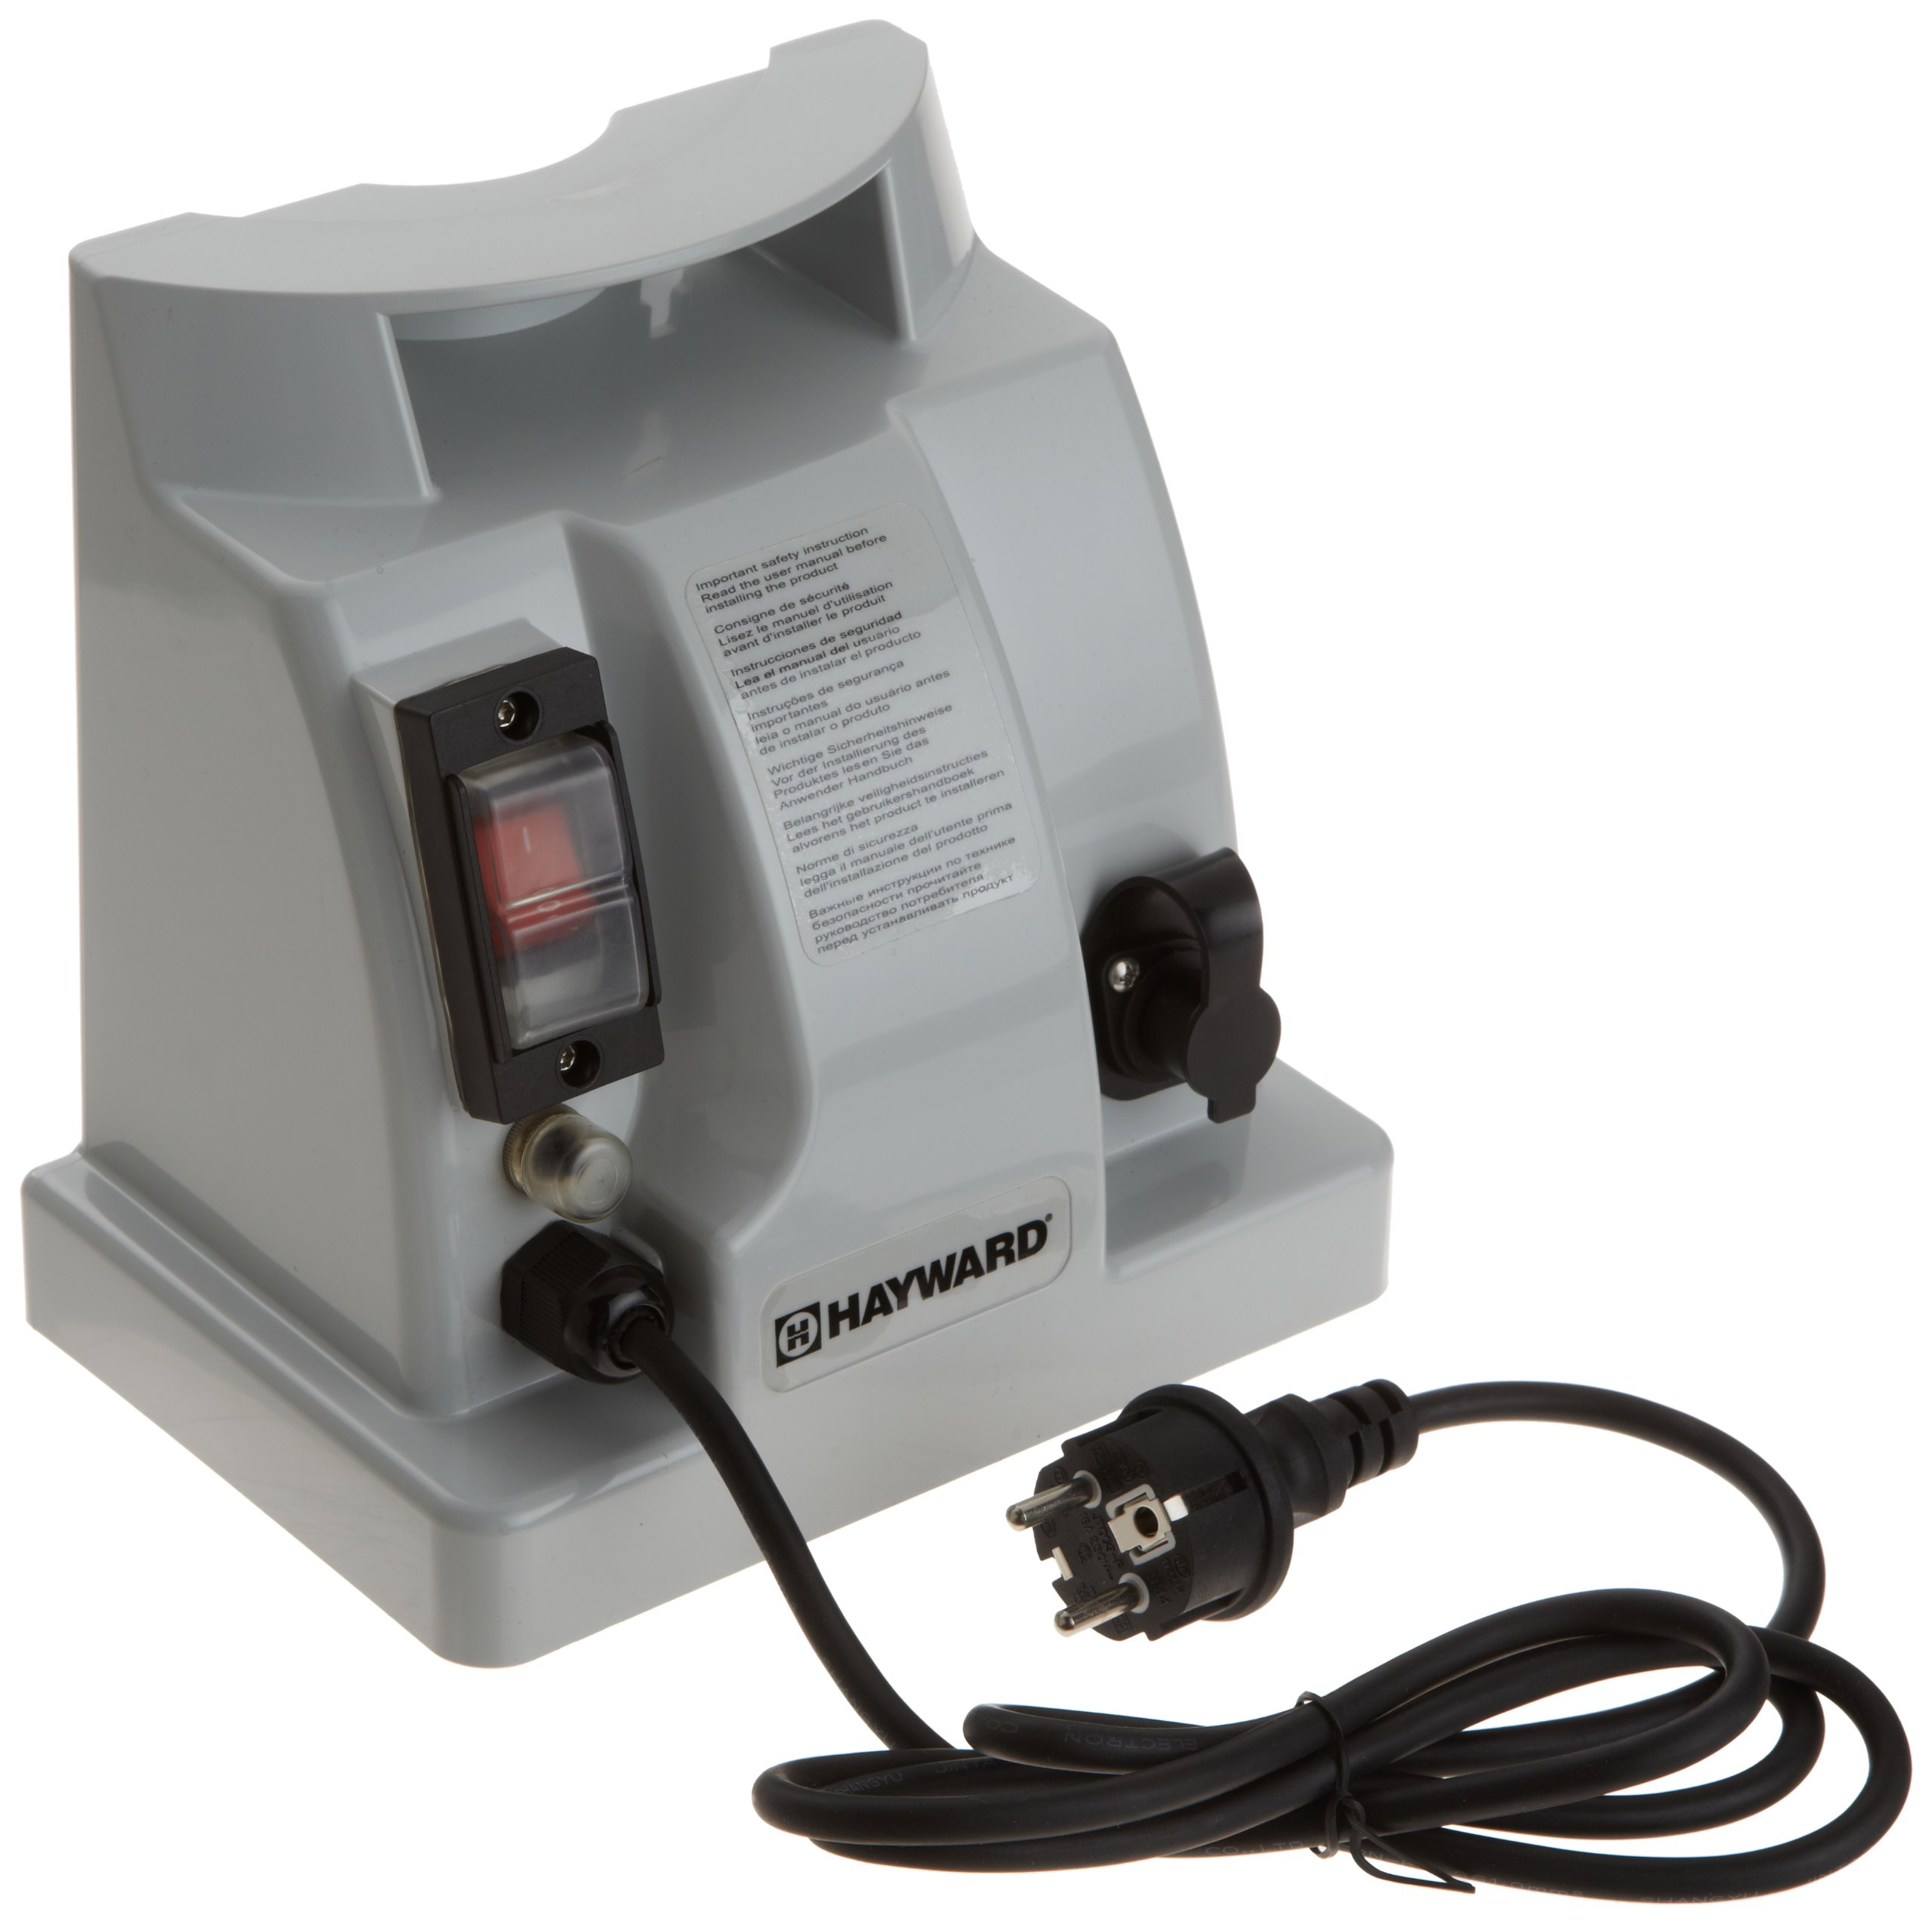 Hayward RCX97454 240-Volt in AC Power Supply Replacement for Hayward SharkVac Robotic Cleaners by Hayward (Image #1)